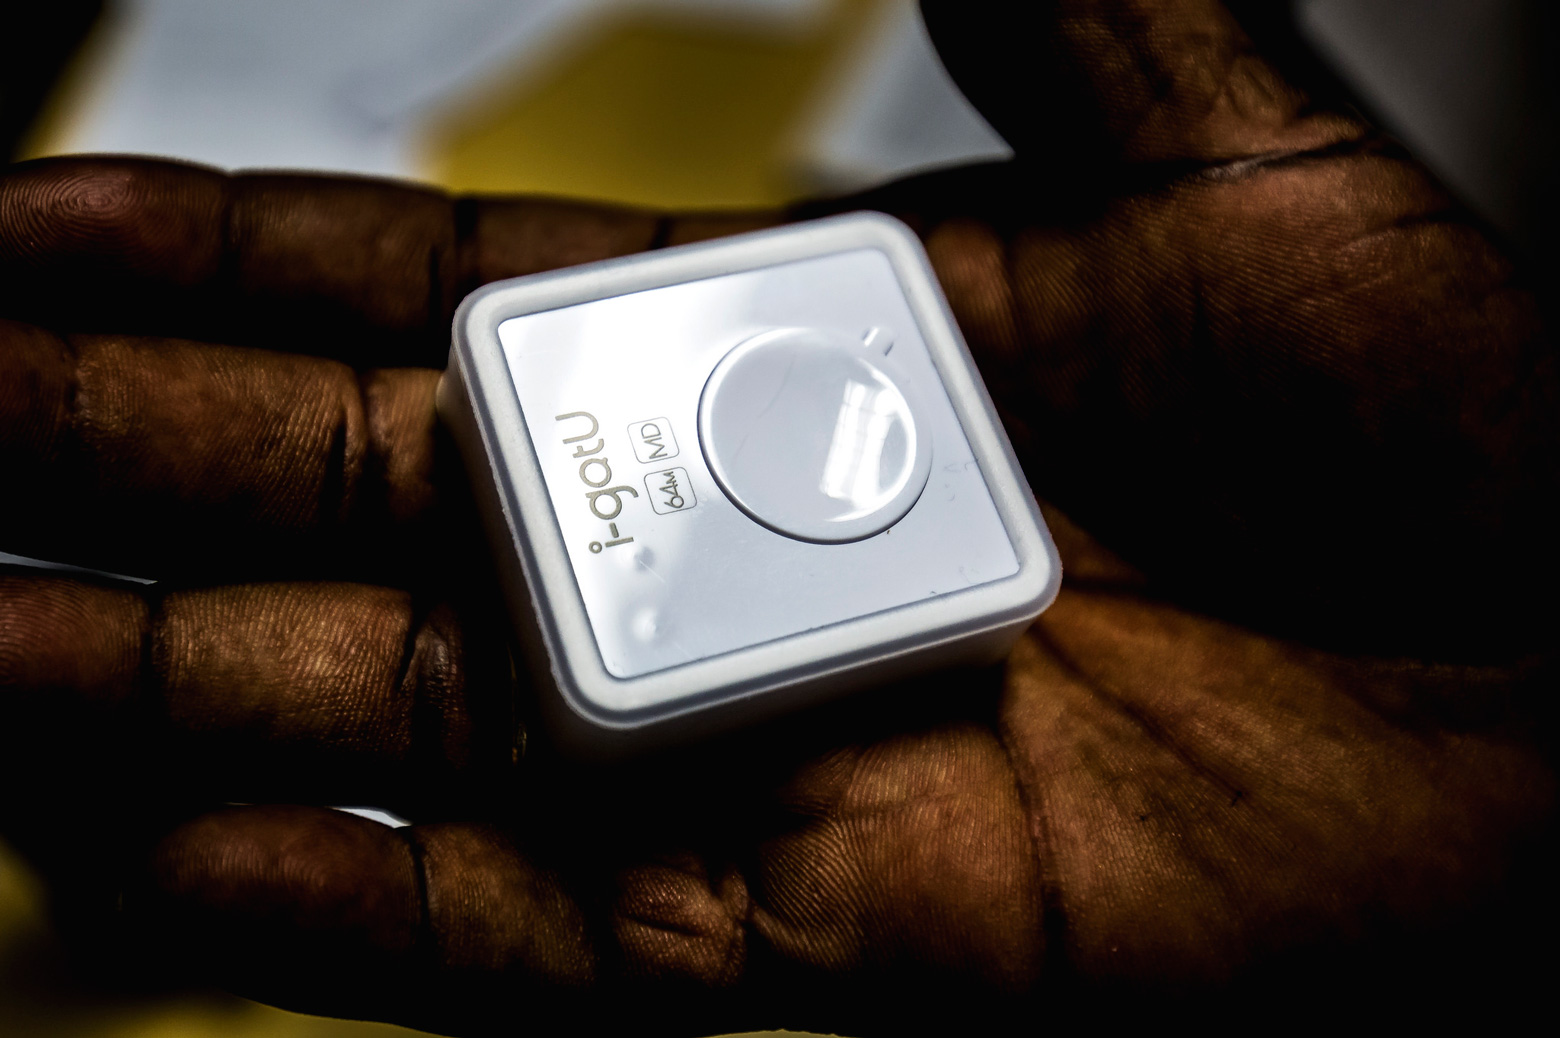 A square device sits in a human hand